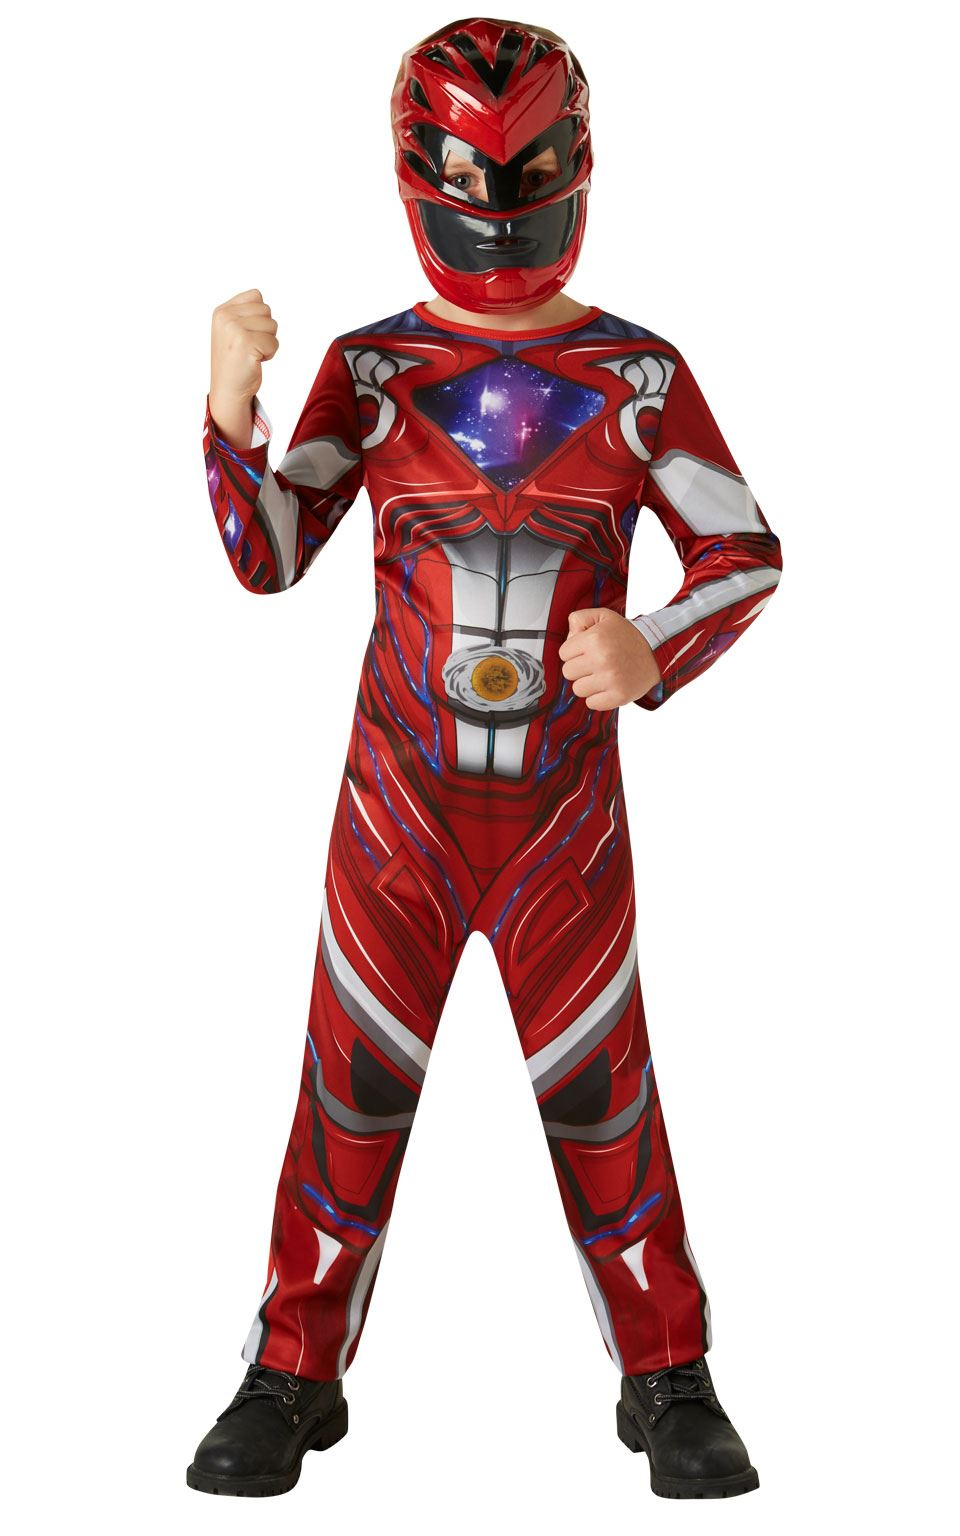 Boys Power Rangers Movie Red Ranger Costume Child Fancy Dress Outfit | eBay